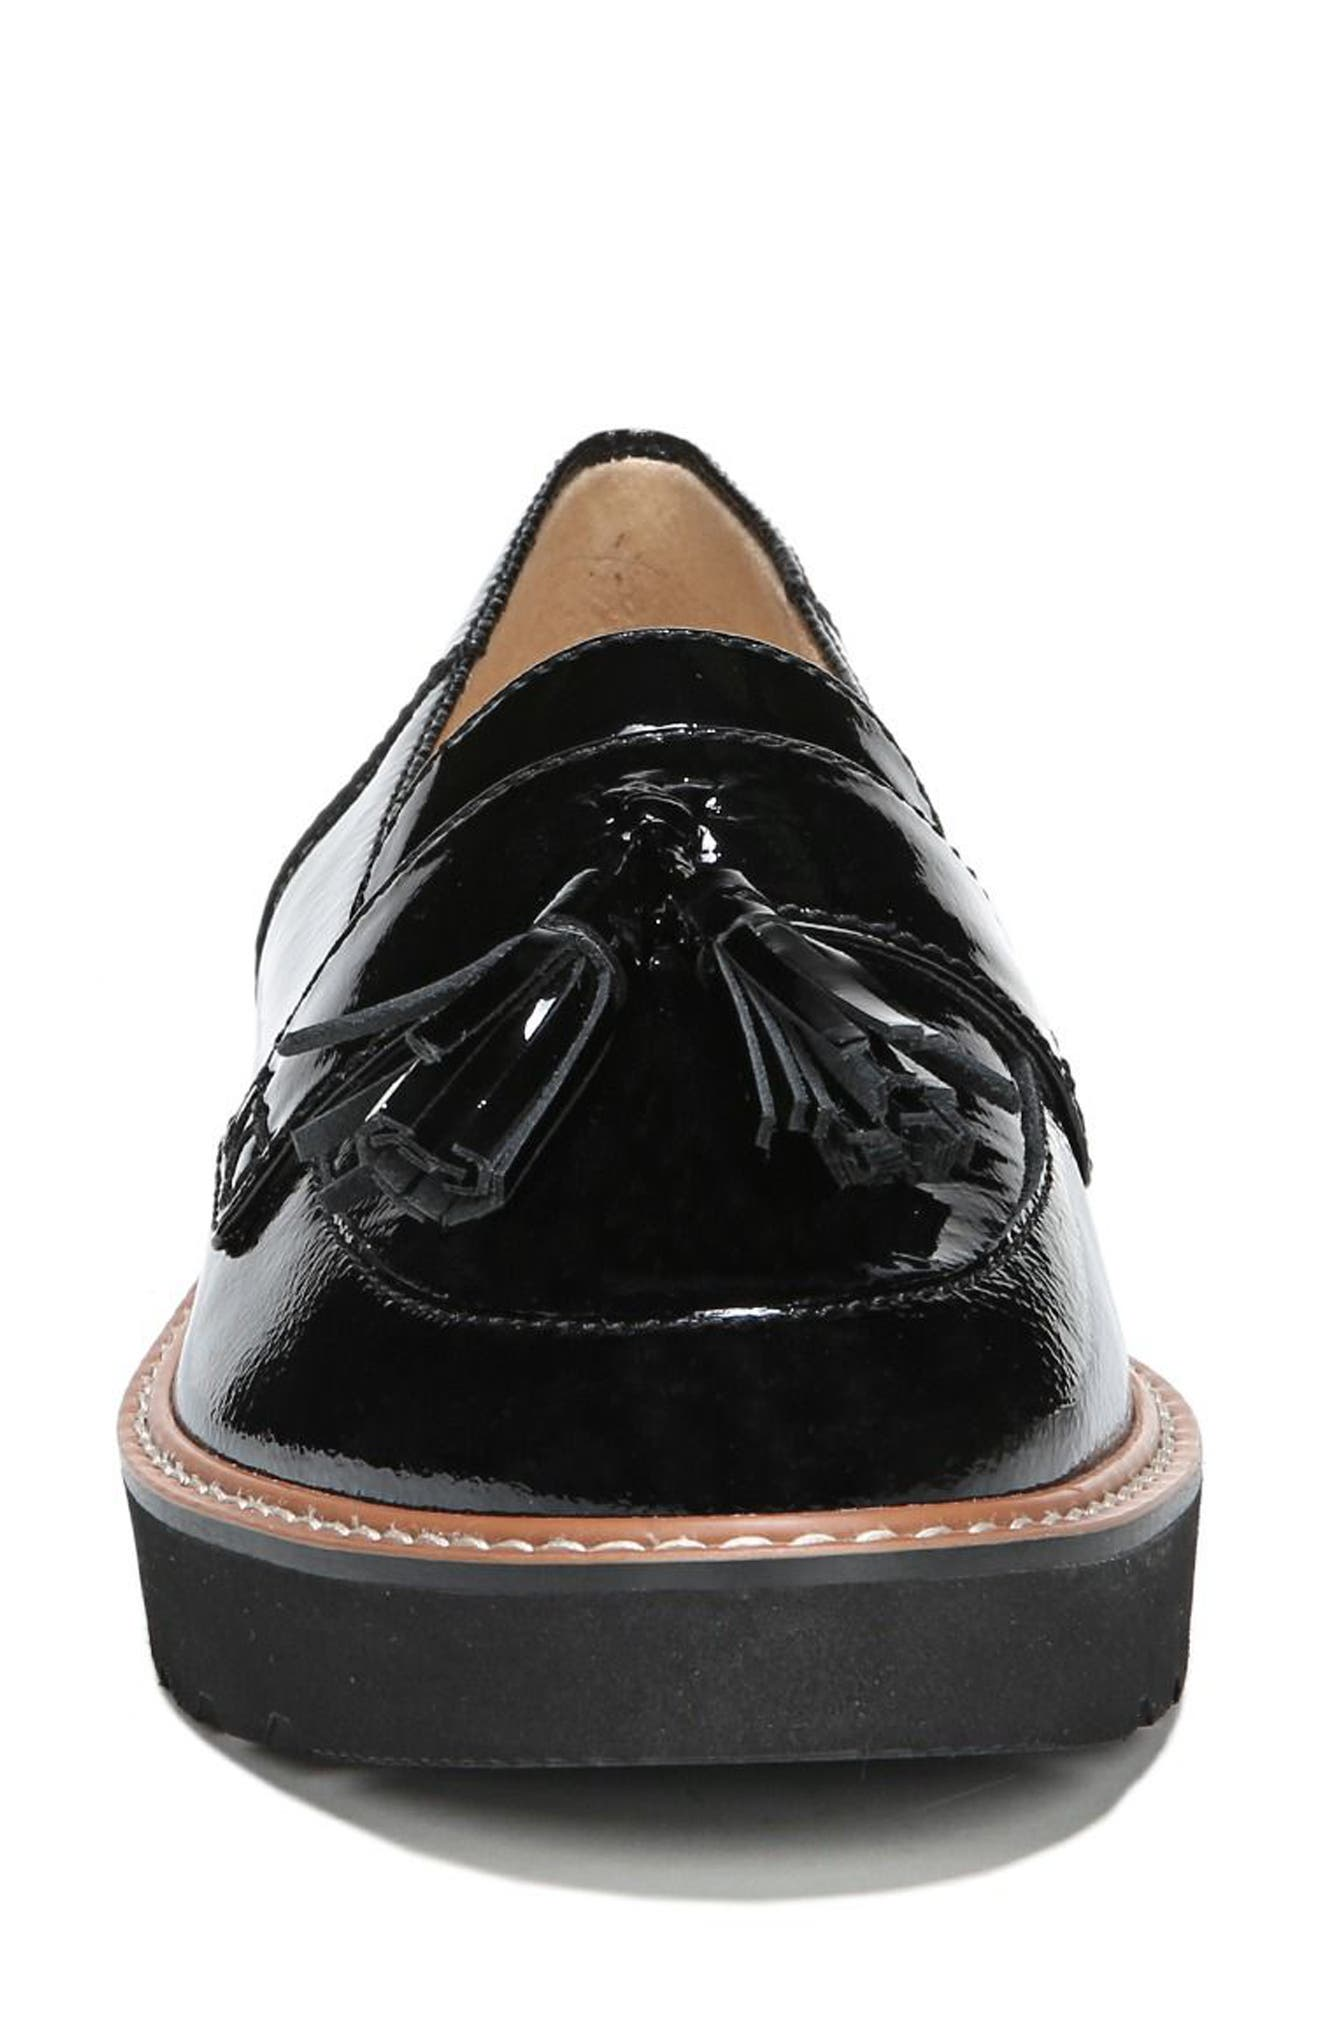 August Loafer,                             Alternate thumbnail 4, color,                             BLACK PATENT LEATHER